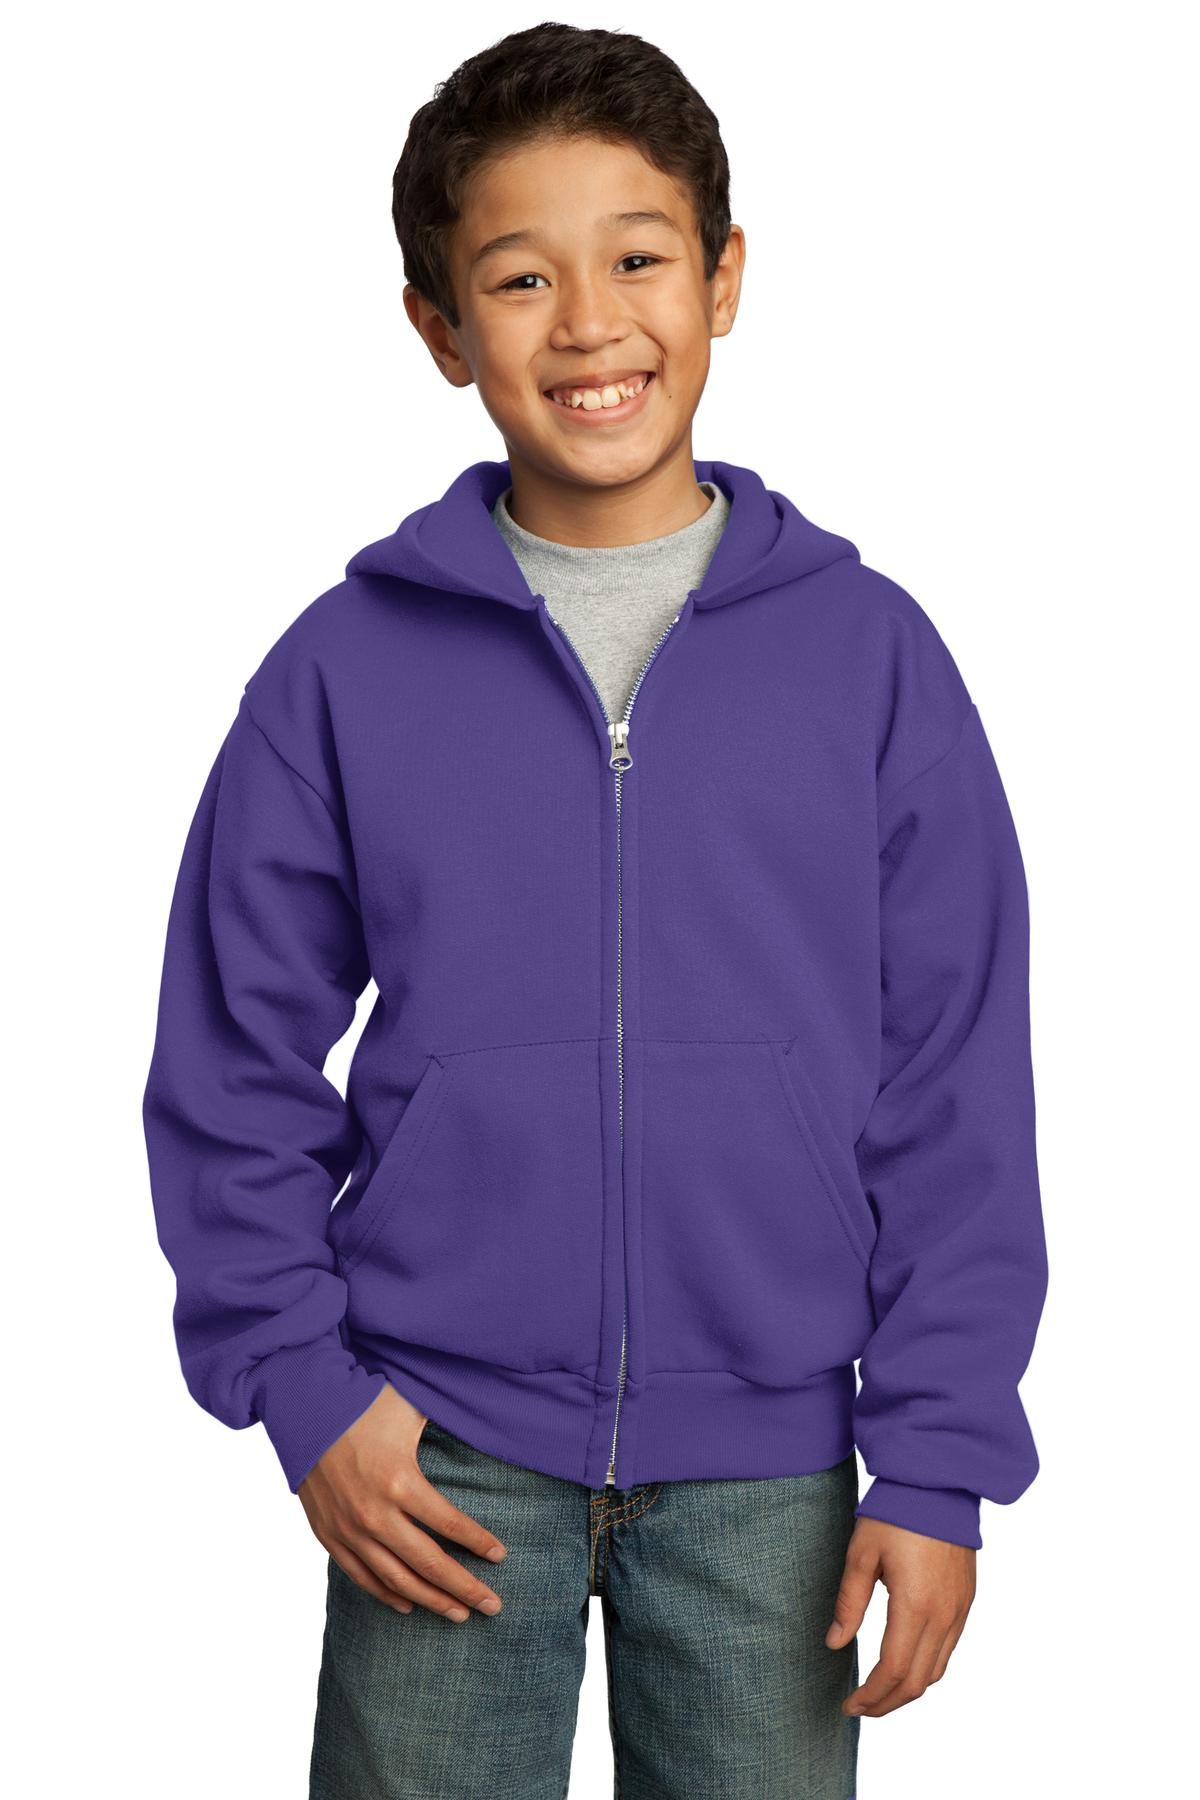 Port & Company ®  - Youth Core Fleece Full-Zip Hooded Sweatshirt.  PC90YZH - Purple